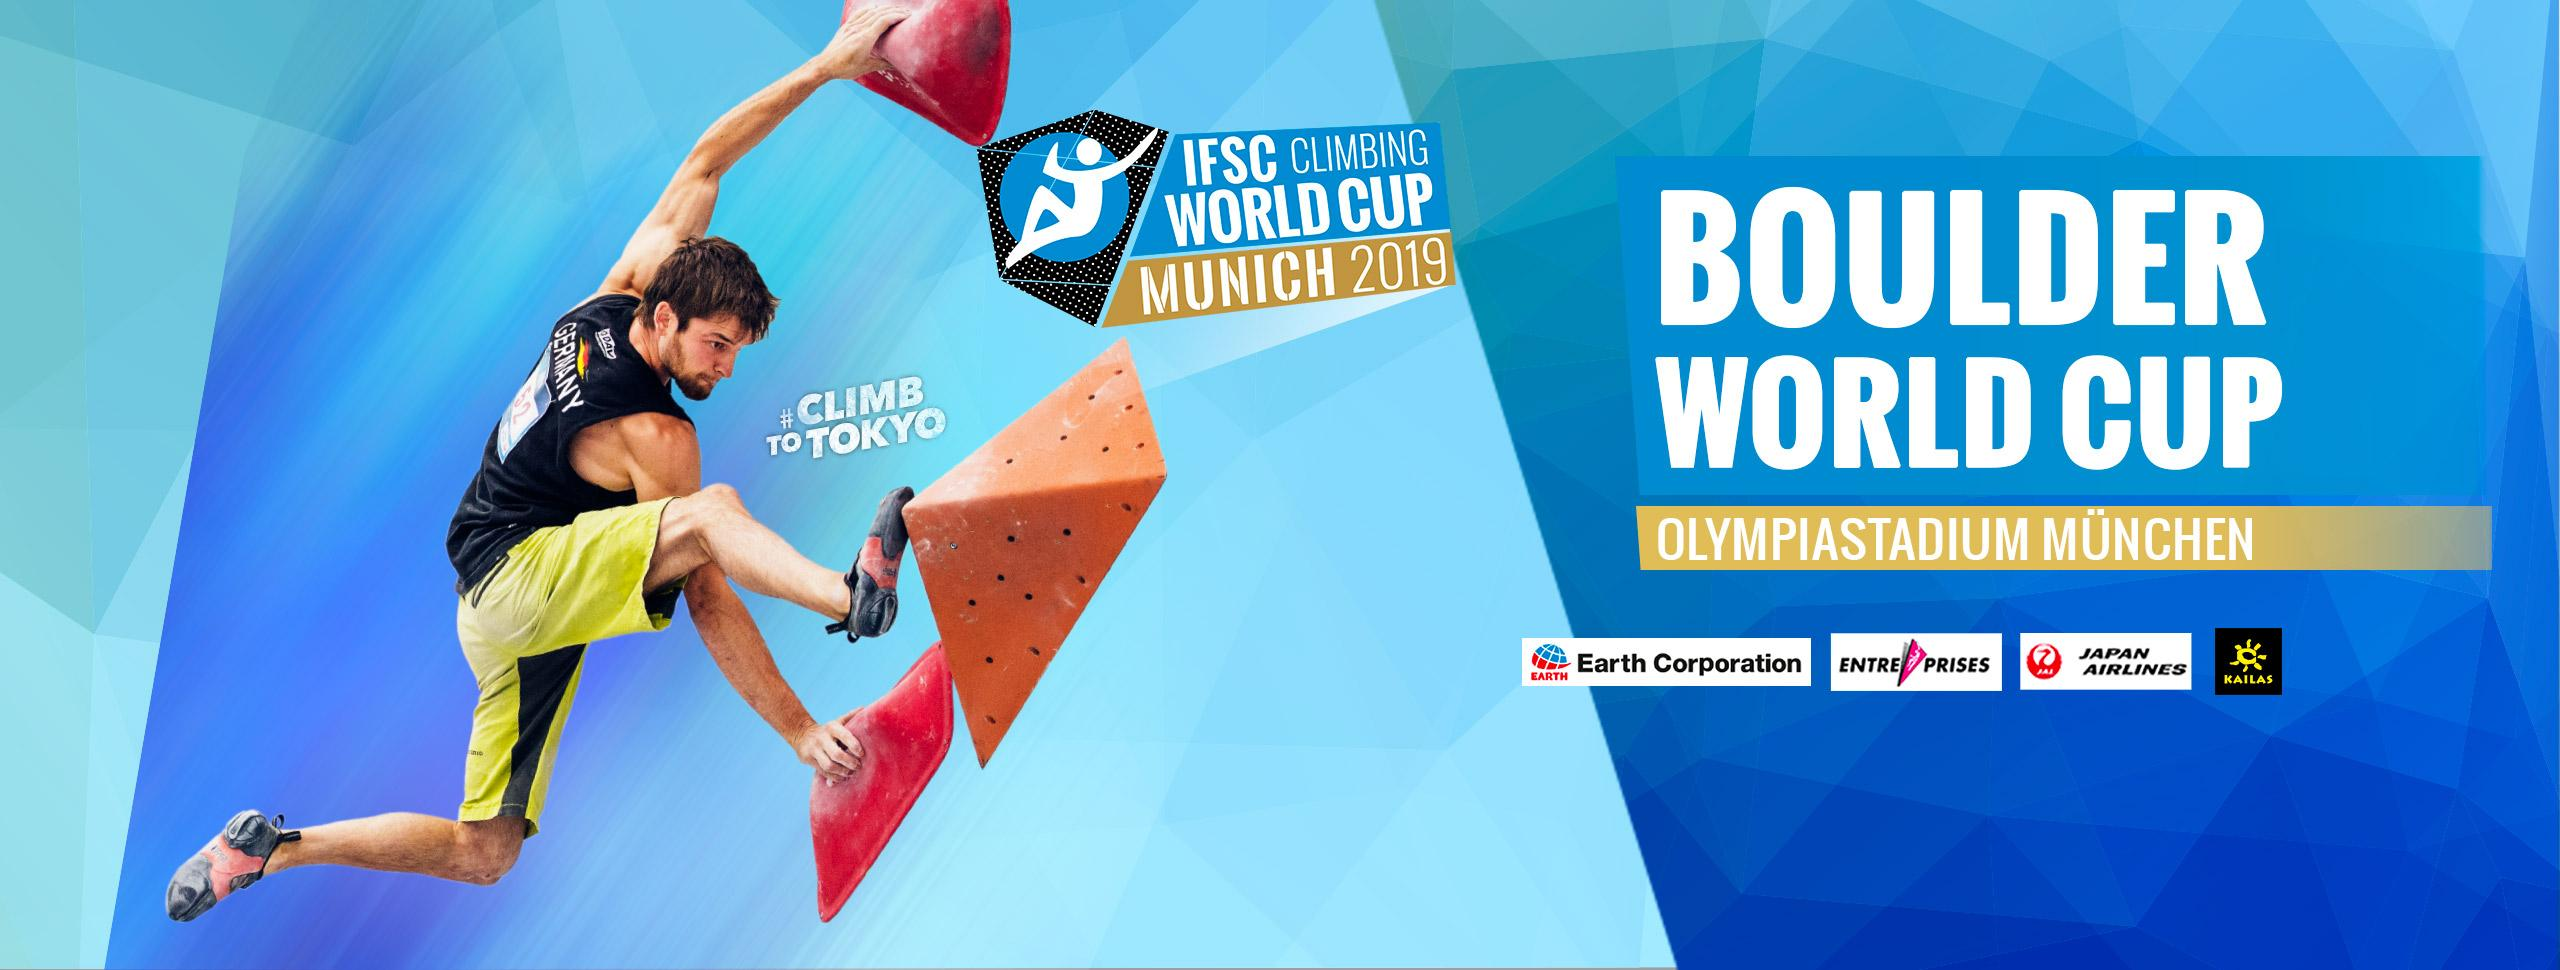 The Penultimate Bouldering World Cup of 2019